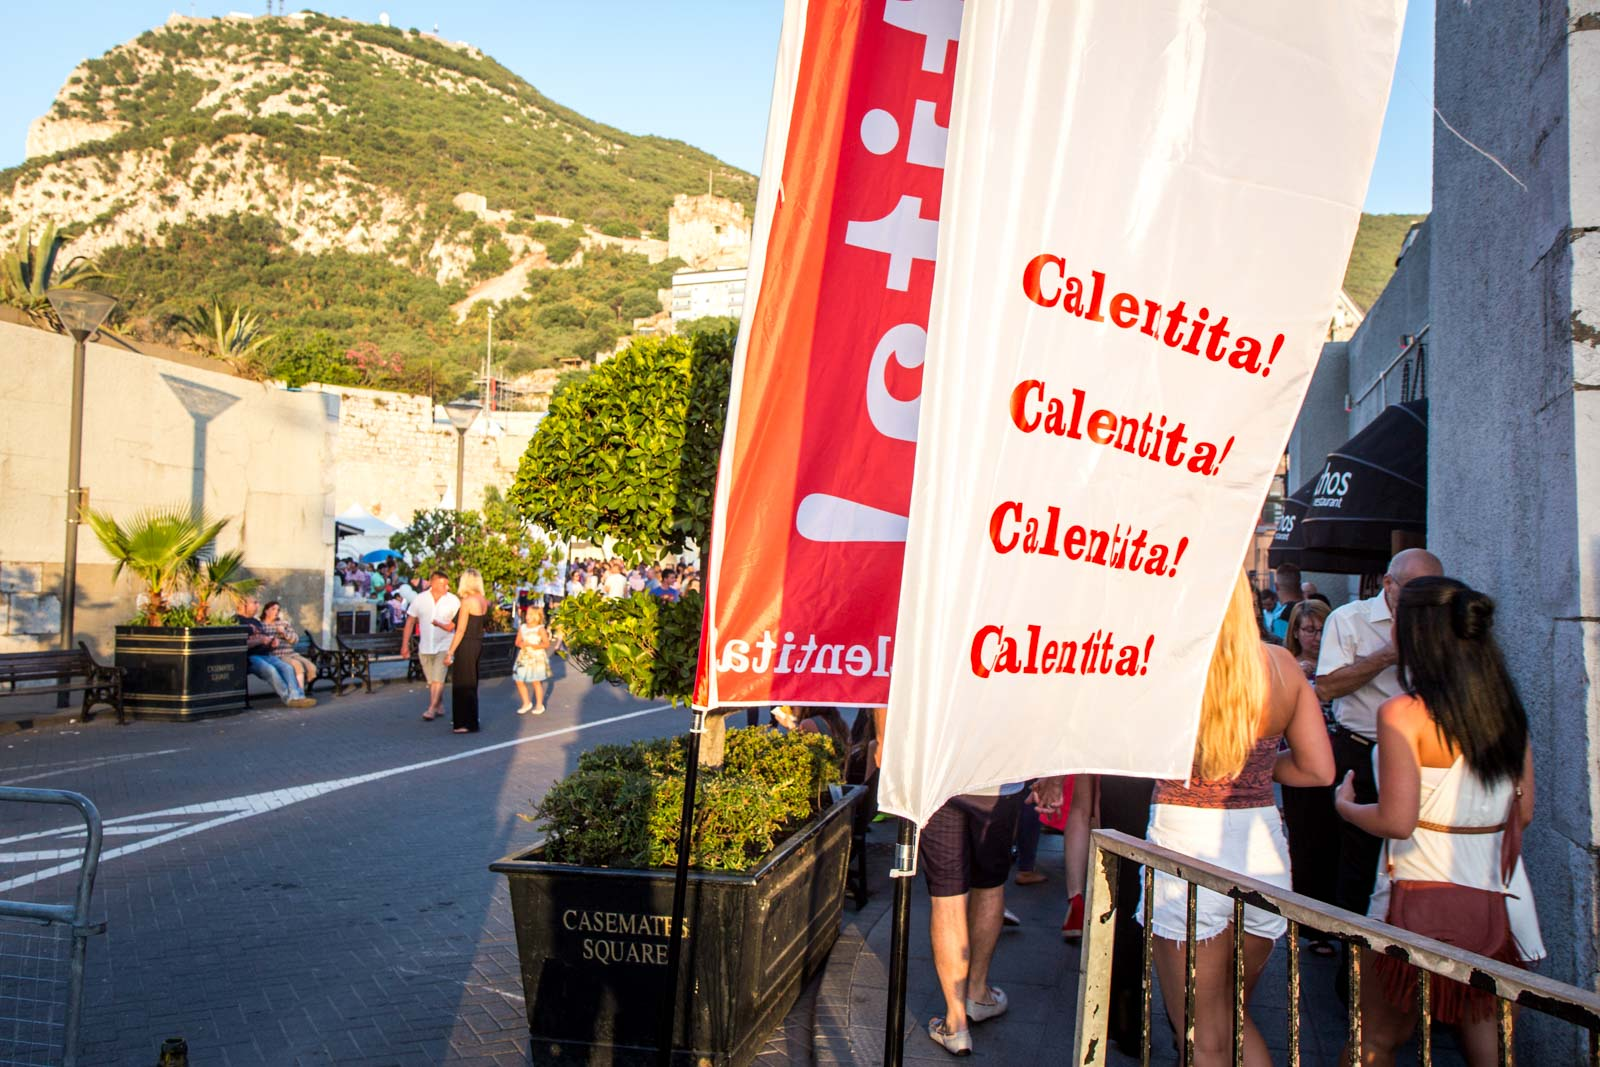 Facts about Gibraltar